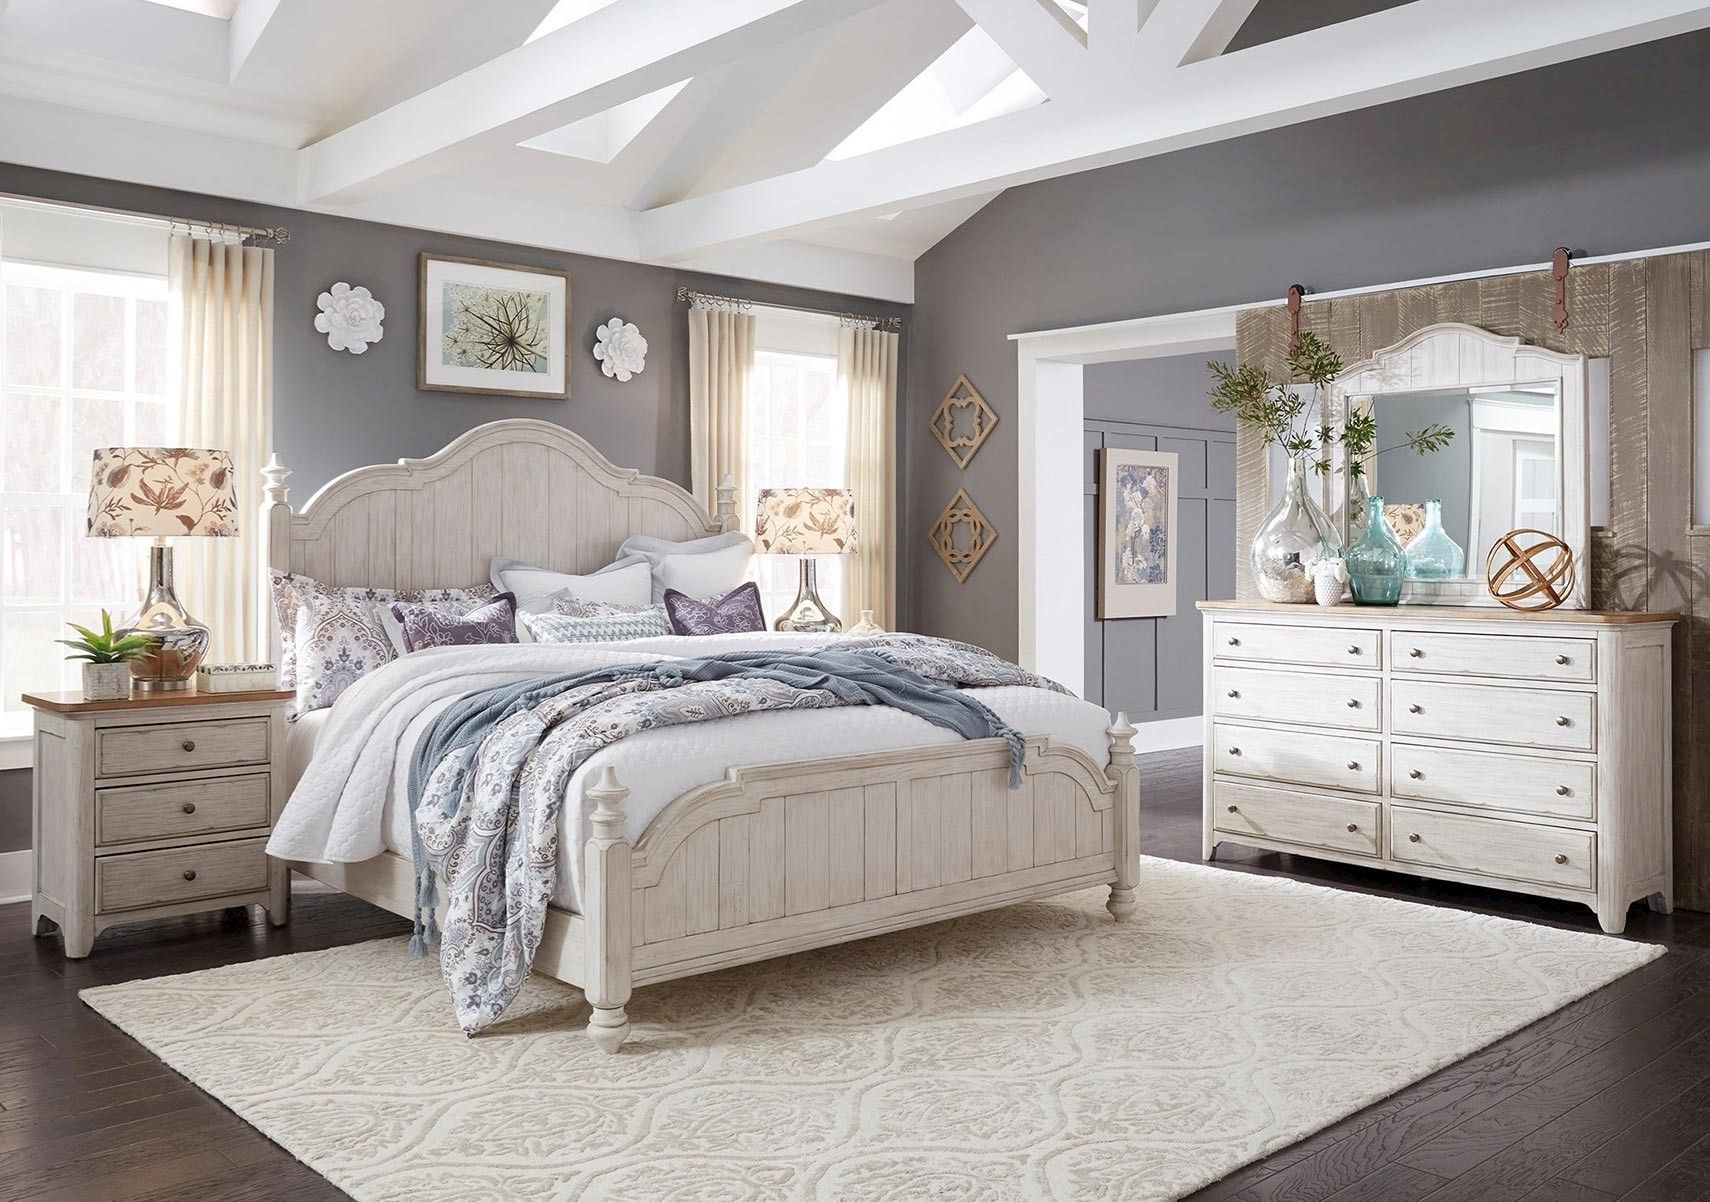 Best Lacks Farmhouse 4 Pc King Bedroom Set With Images 400 x 300